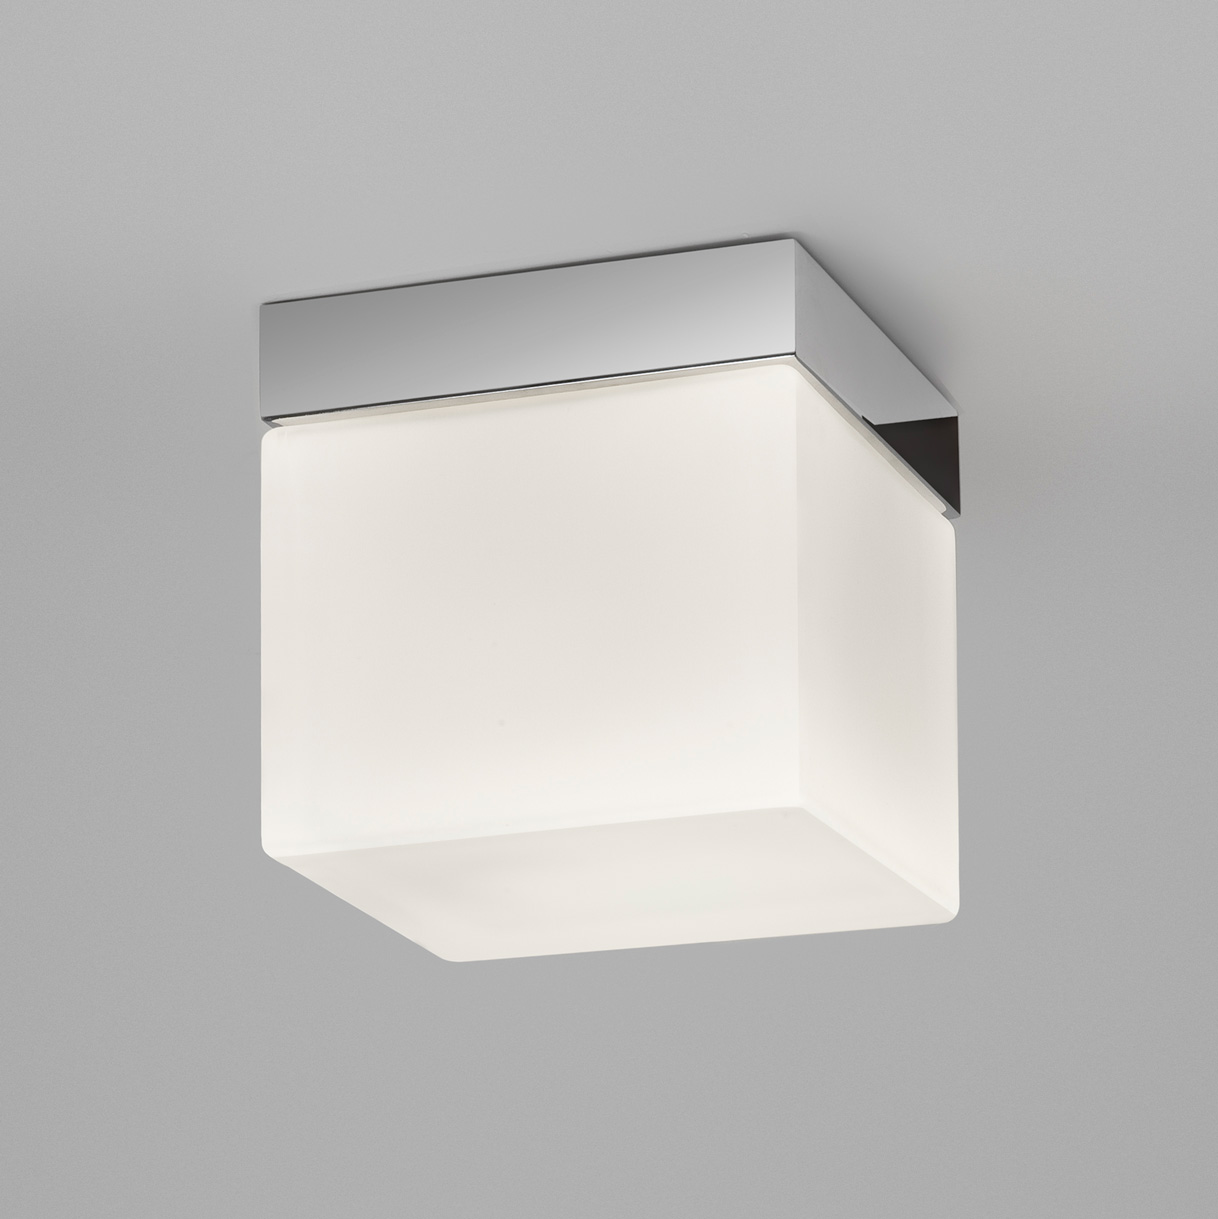 Astro Sabina 7095 square ceiling light 60W E27 IP44 polished chrome opal glass Thumbnail 1